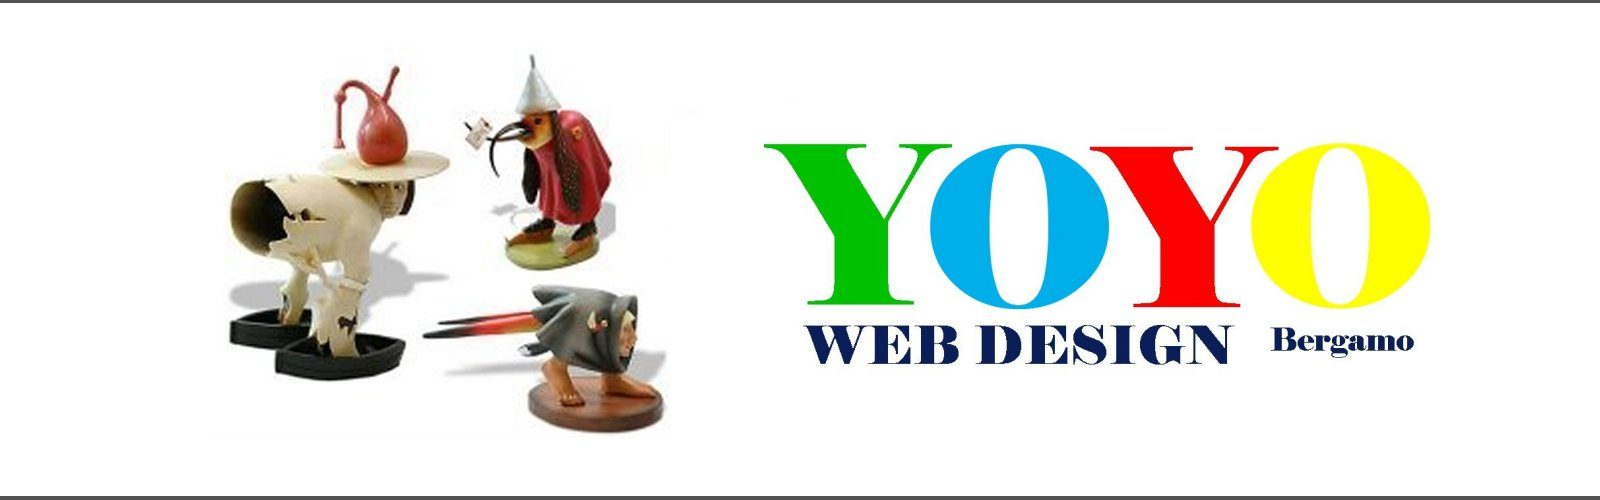 YOYO WEB DESIGN